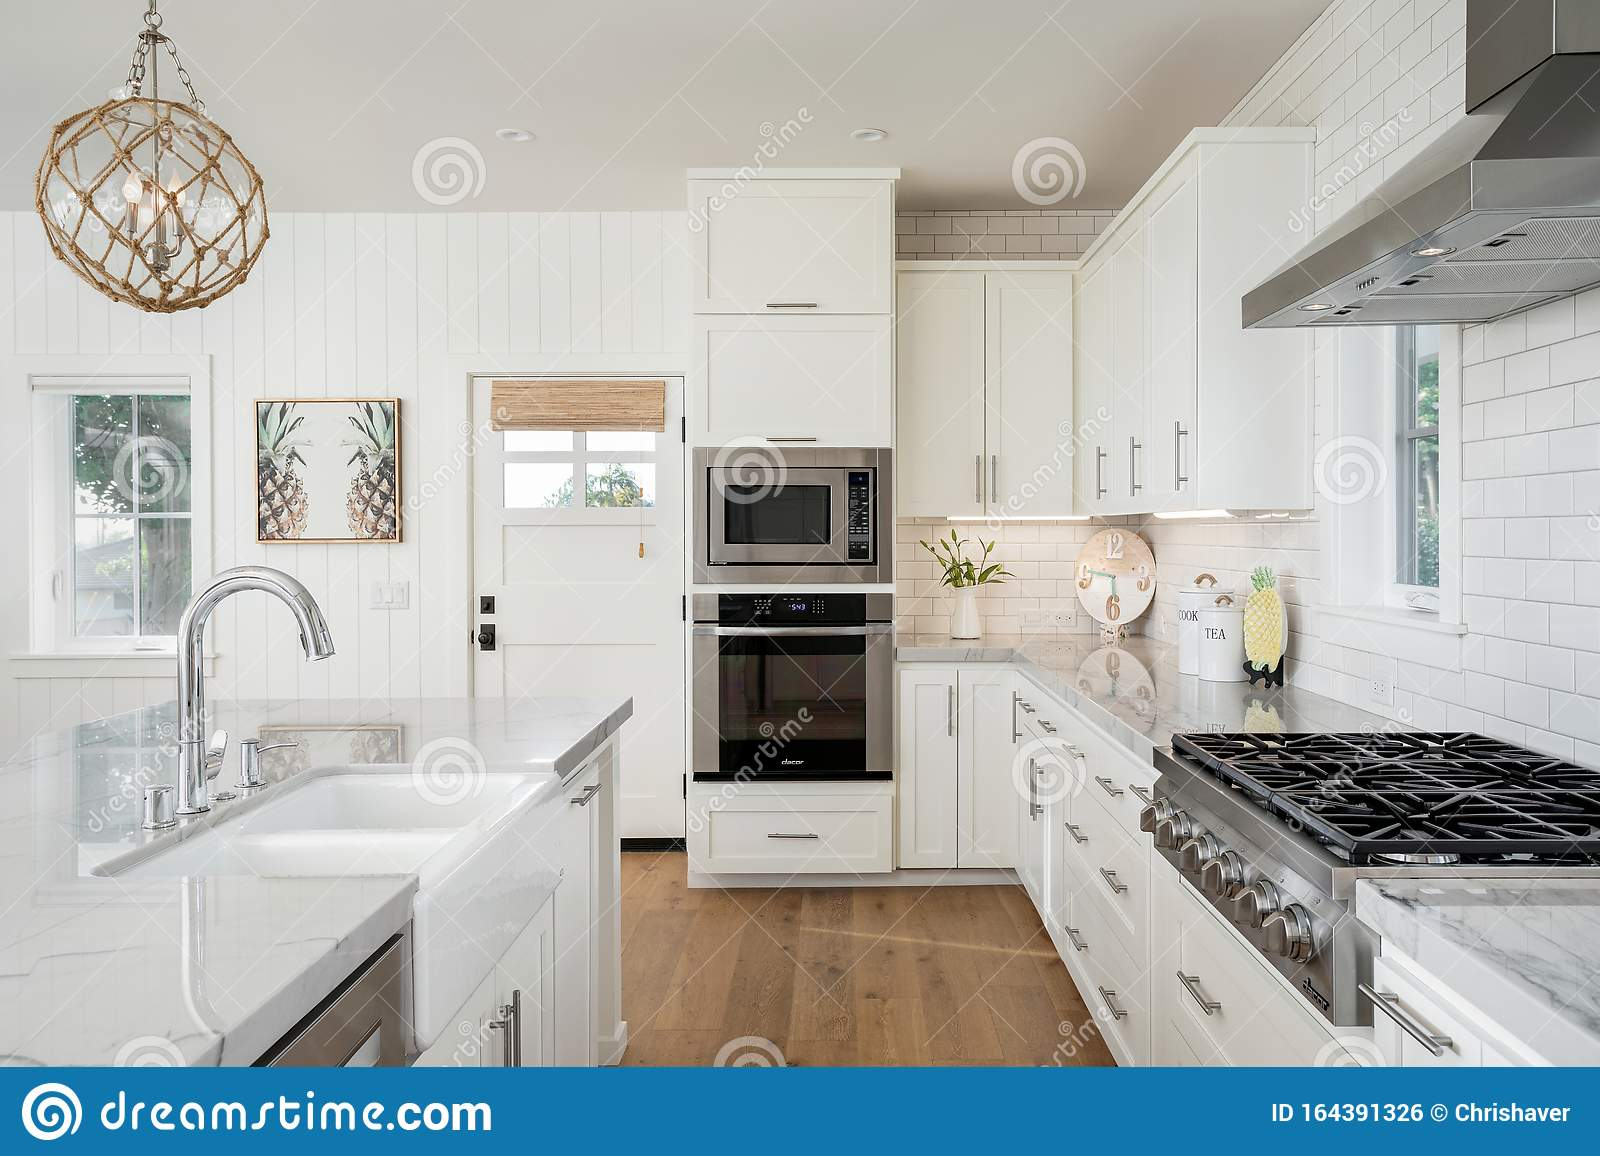 Beach Residential Kitchen Design Remodel Editorial Photo Image Of Building Hood 164391326